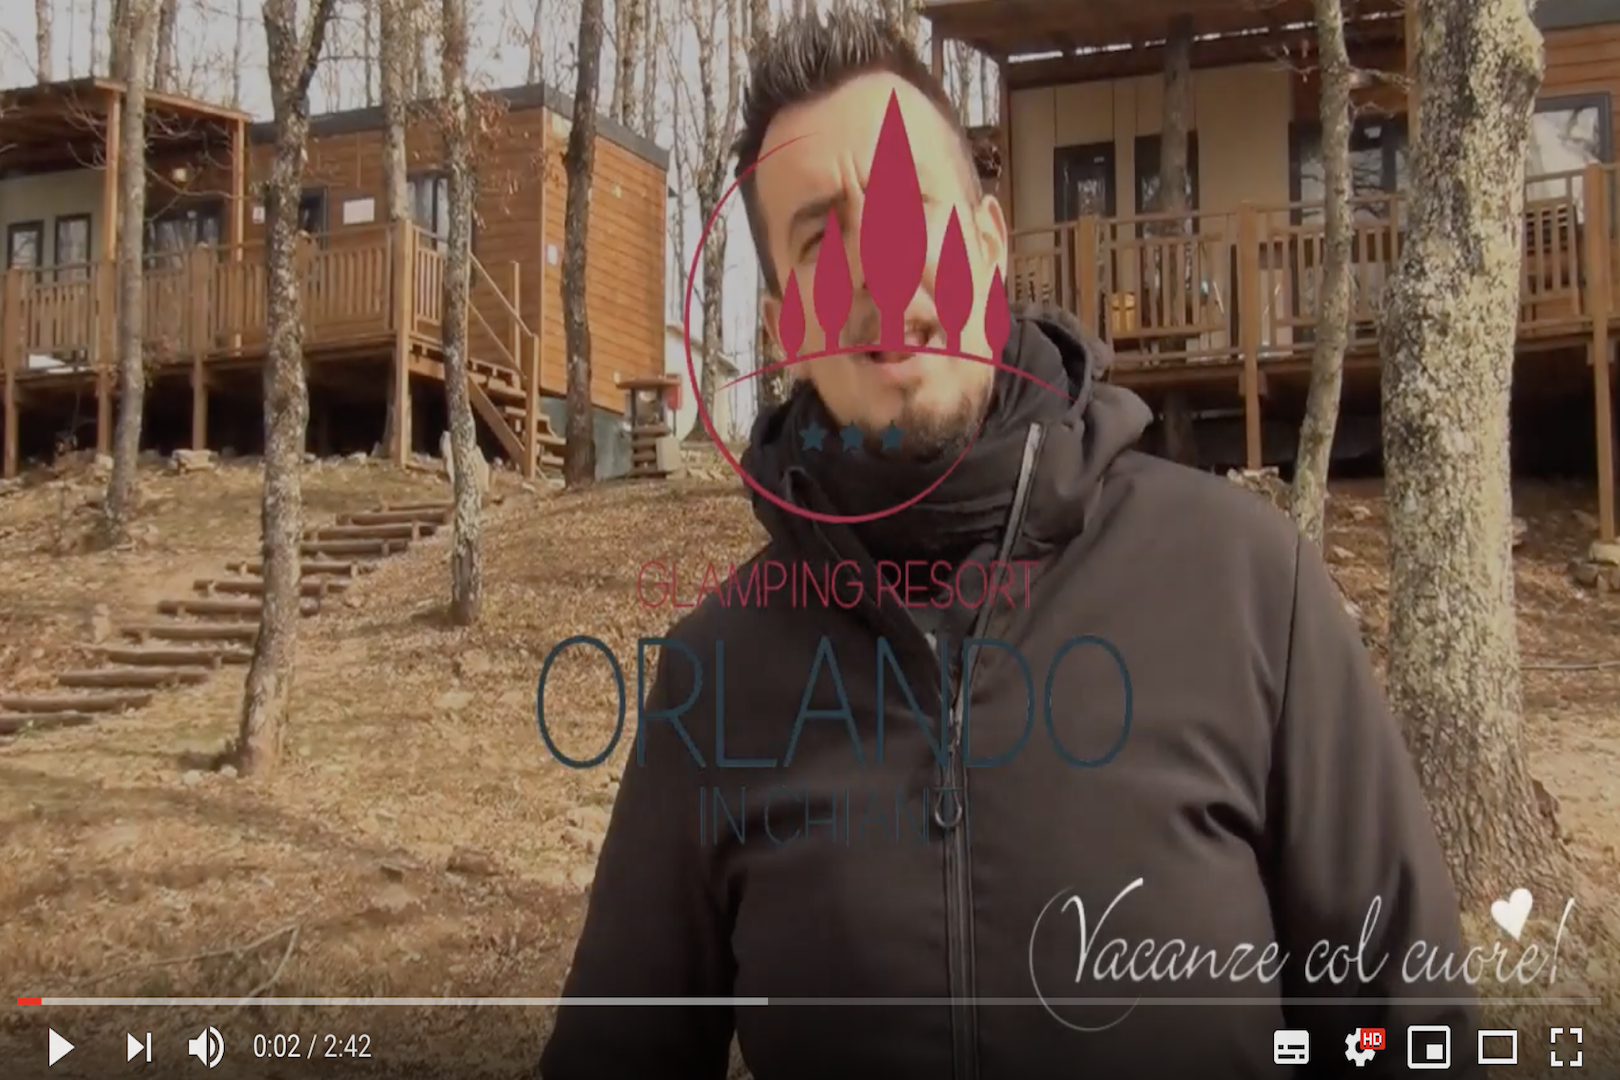 COVID-19 | Work in progress at Orlando in Chianti | Ep.2